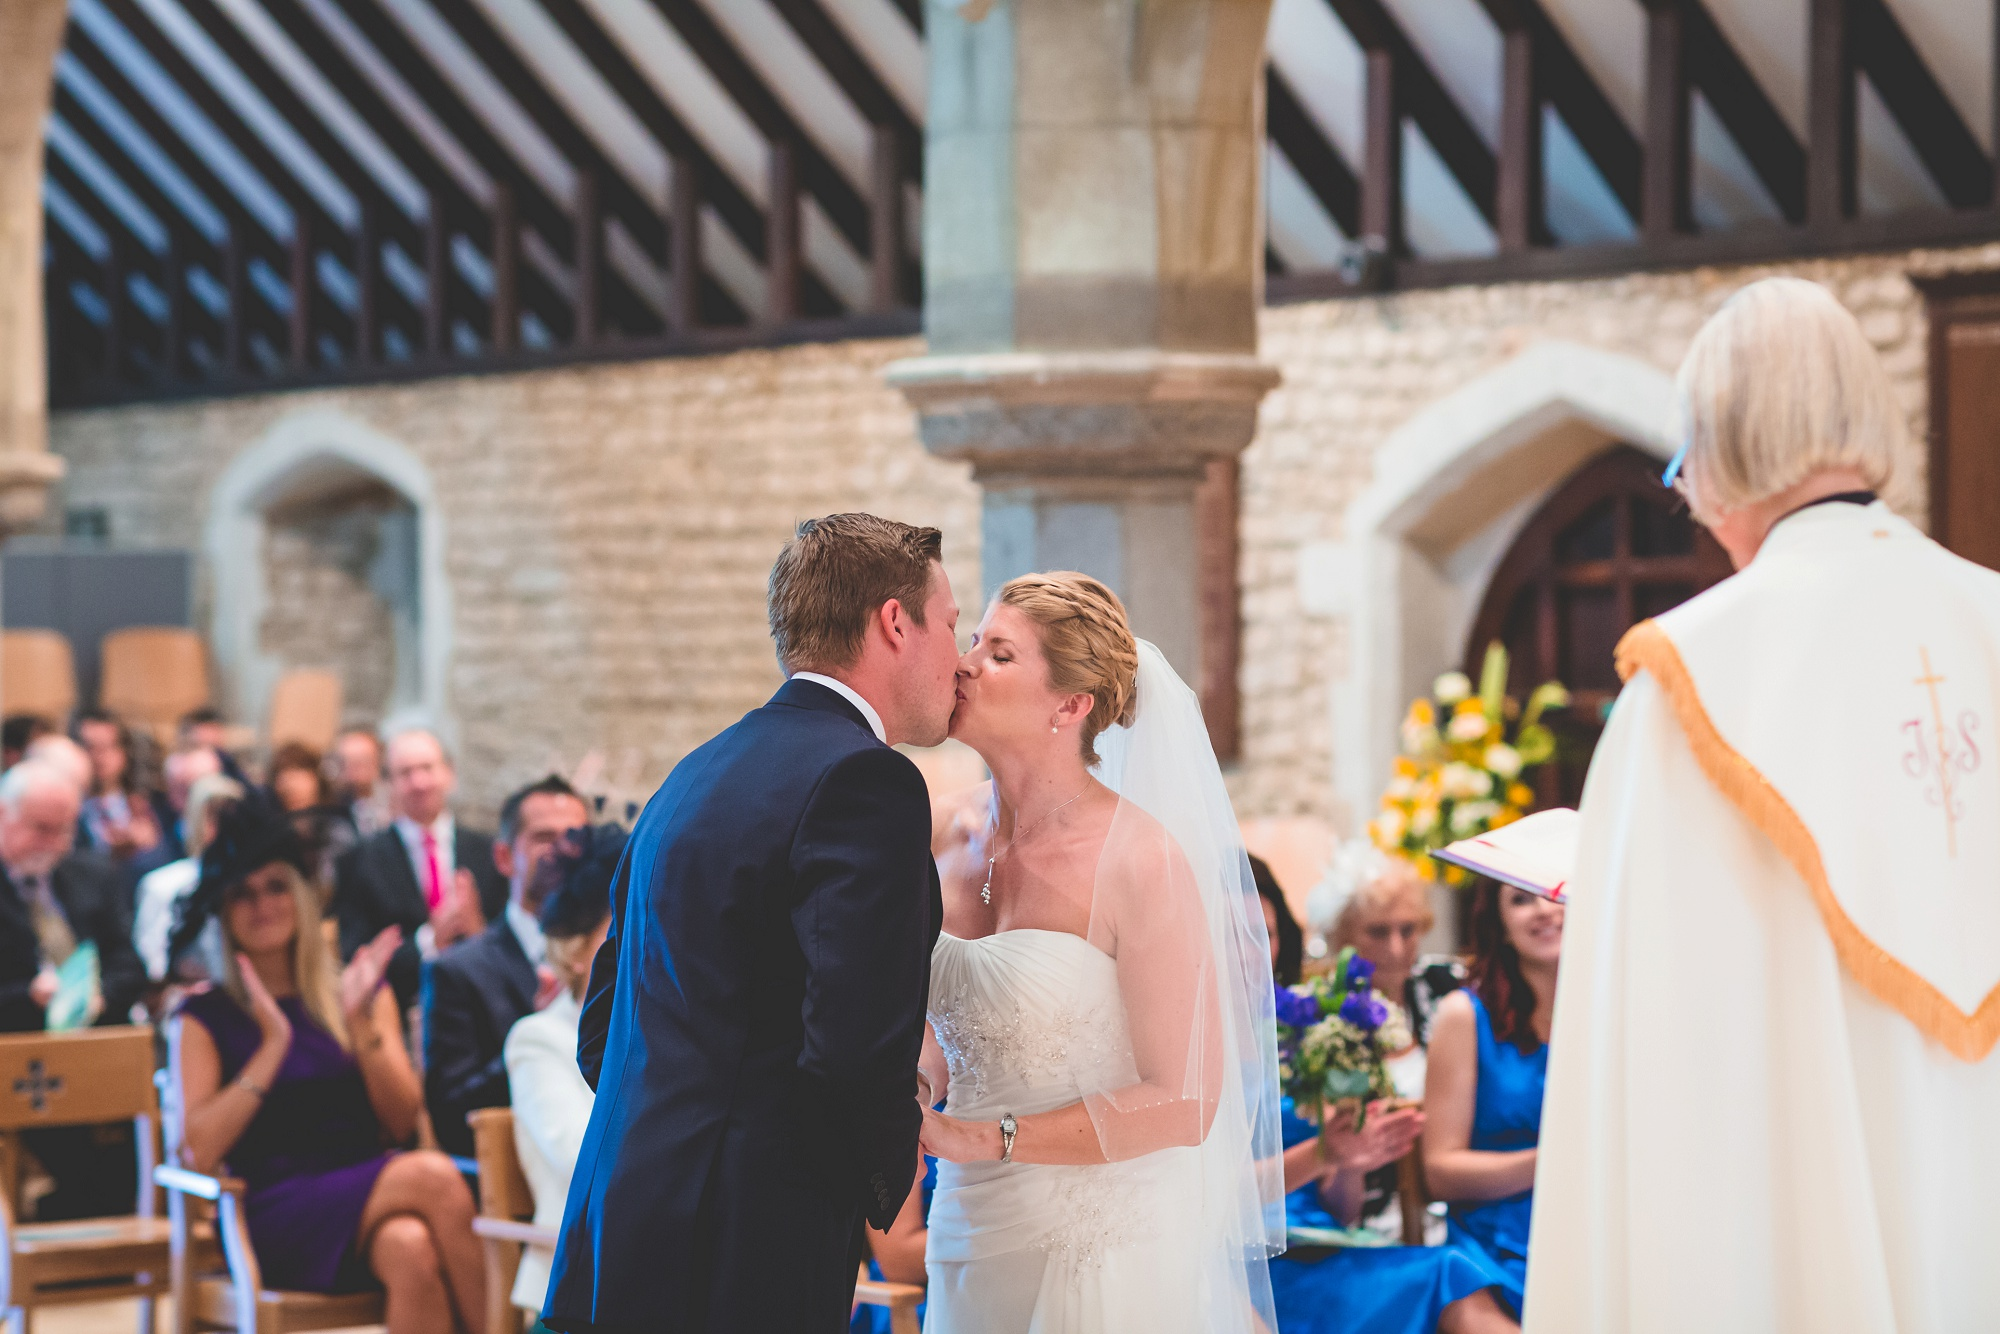 Wedding Photographer West Sussex - Farbridge Chichester